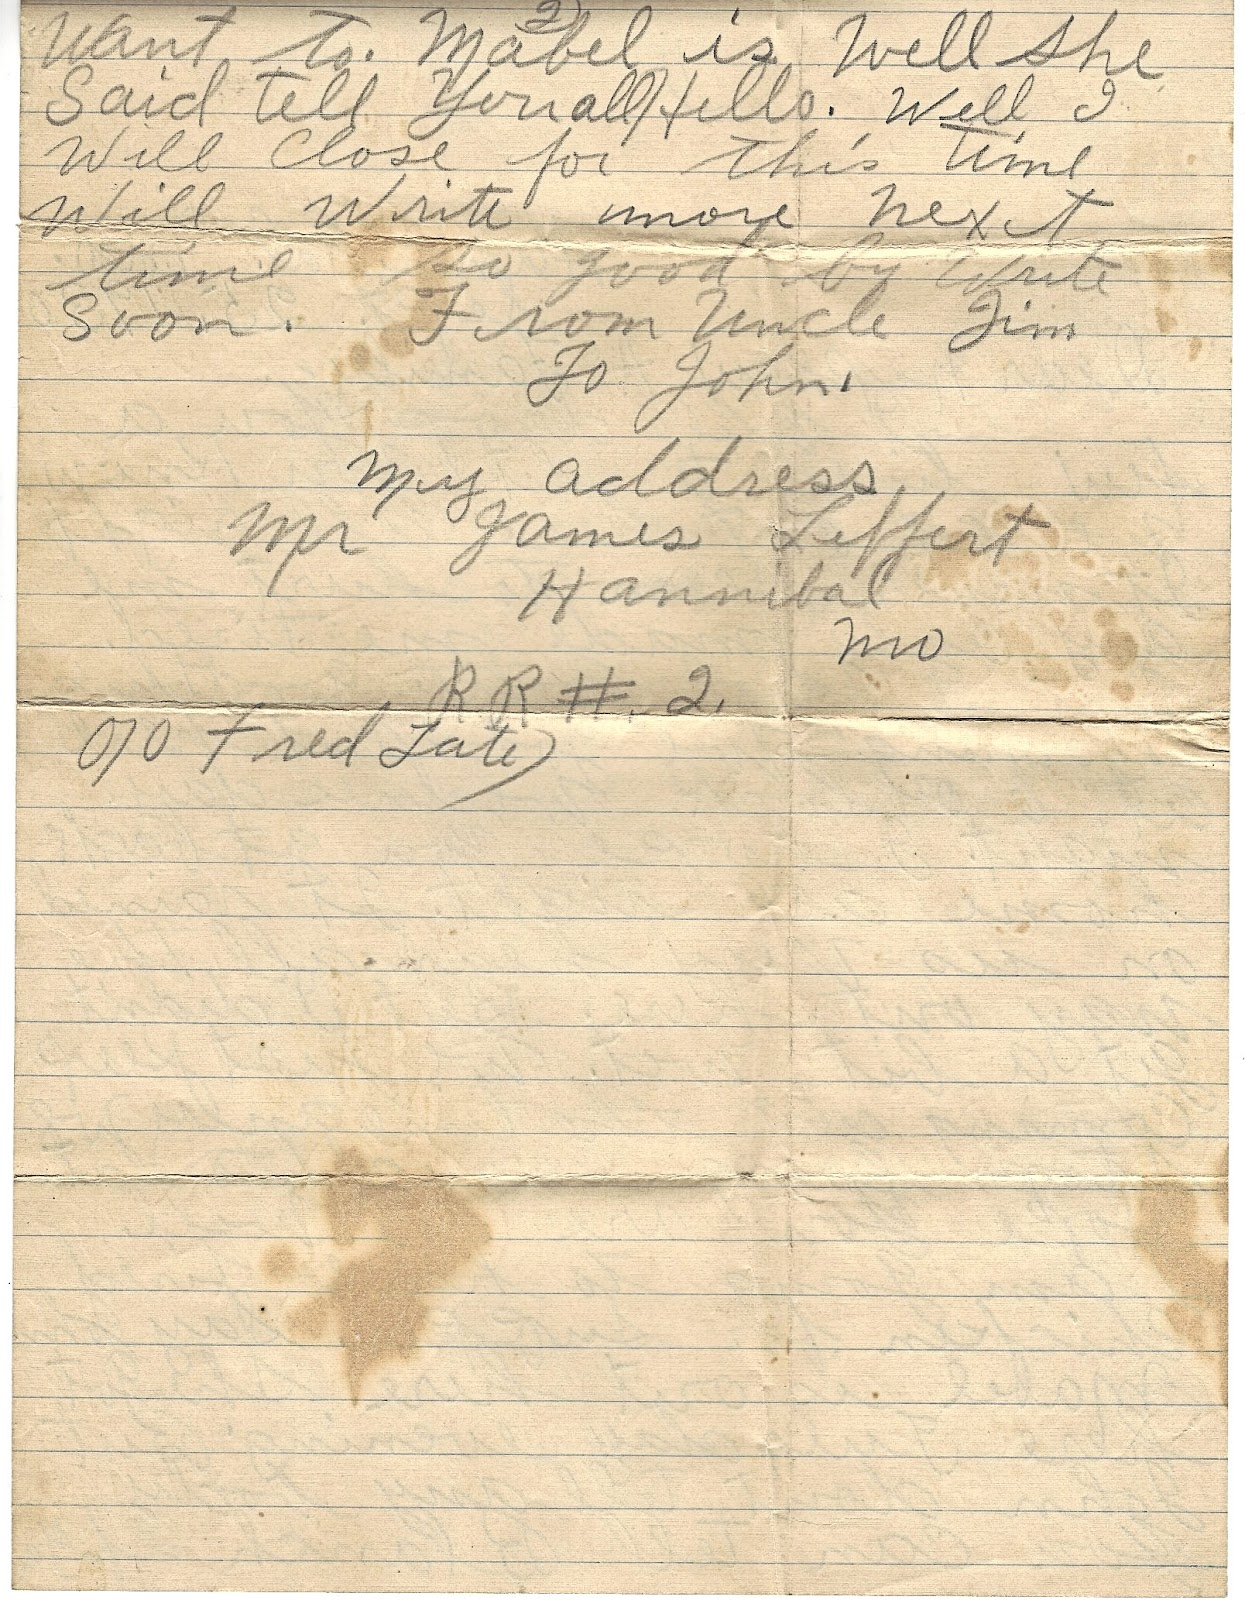 Letter from Uncle Jim 25SEP1930_2.jpg